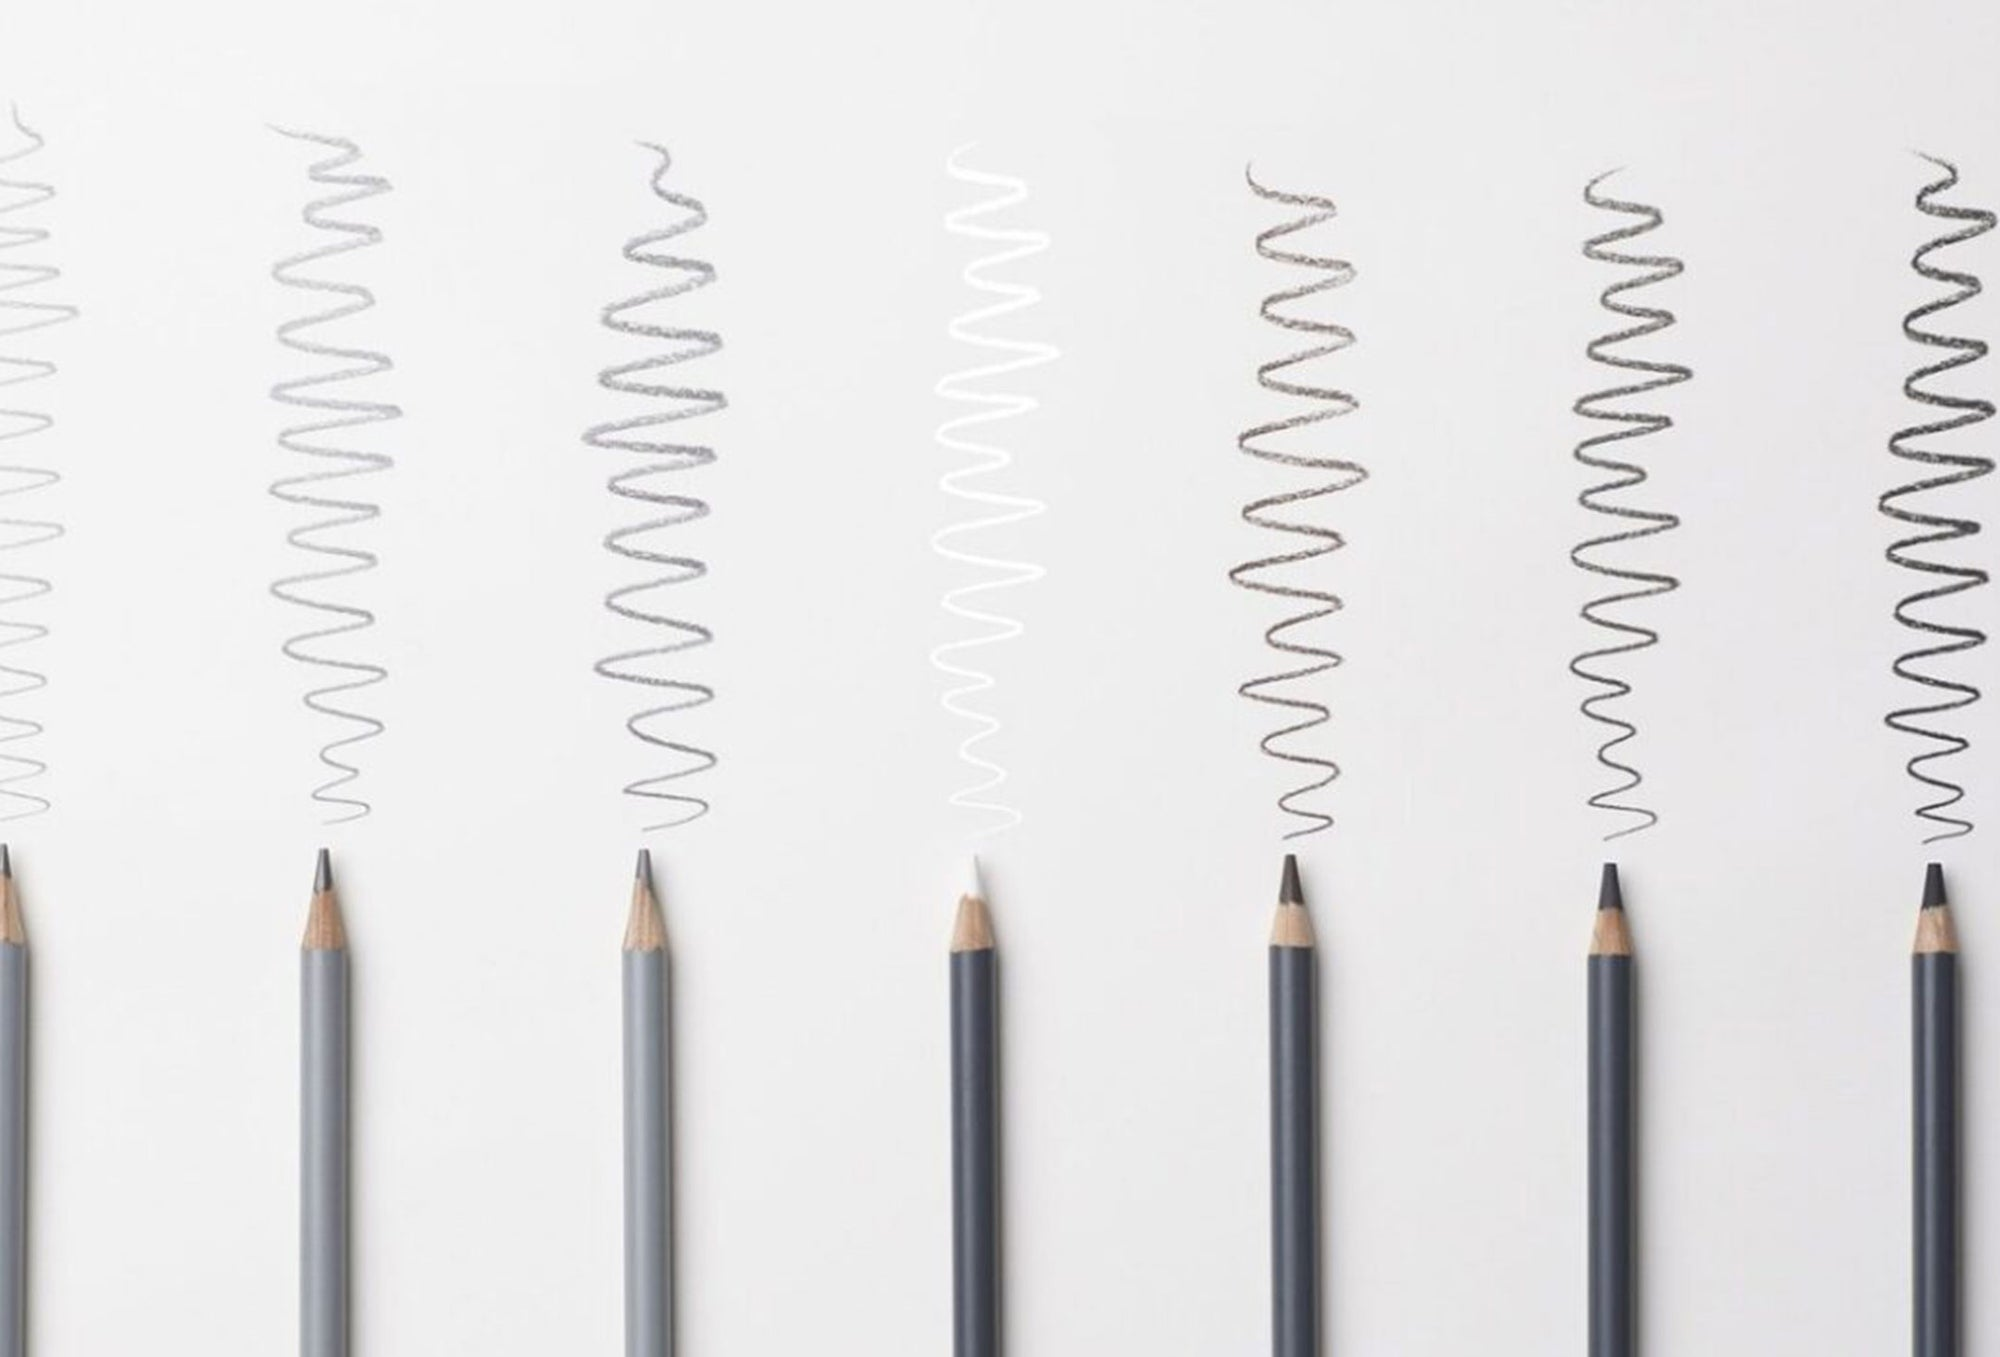 How to use graphite pencils